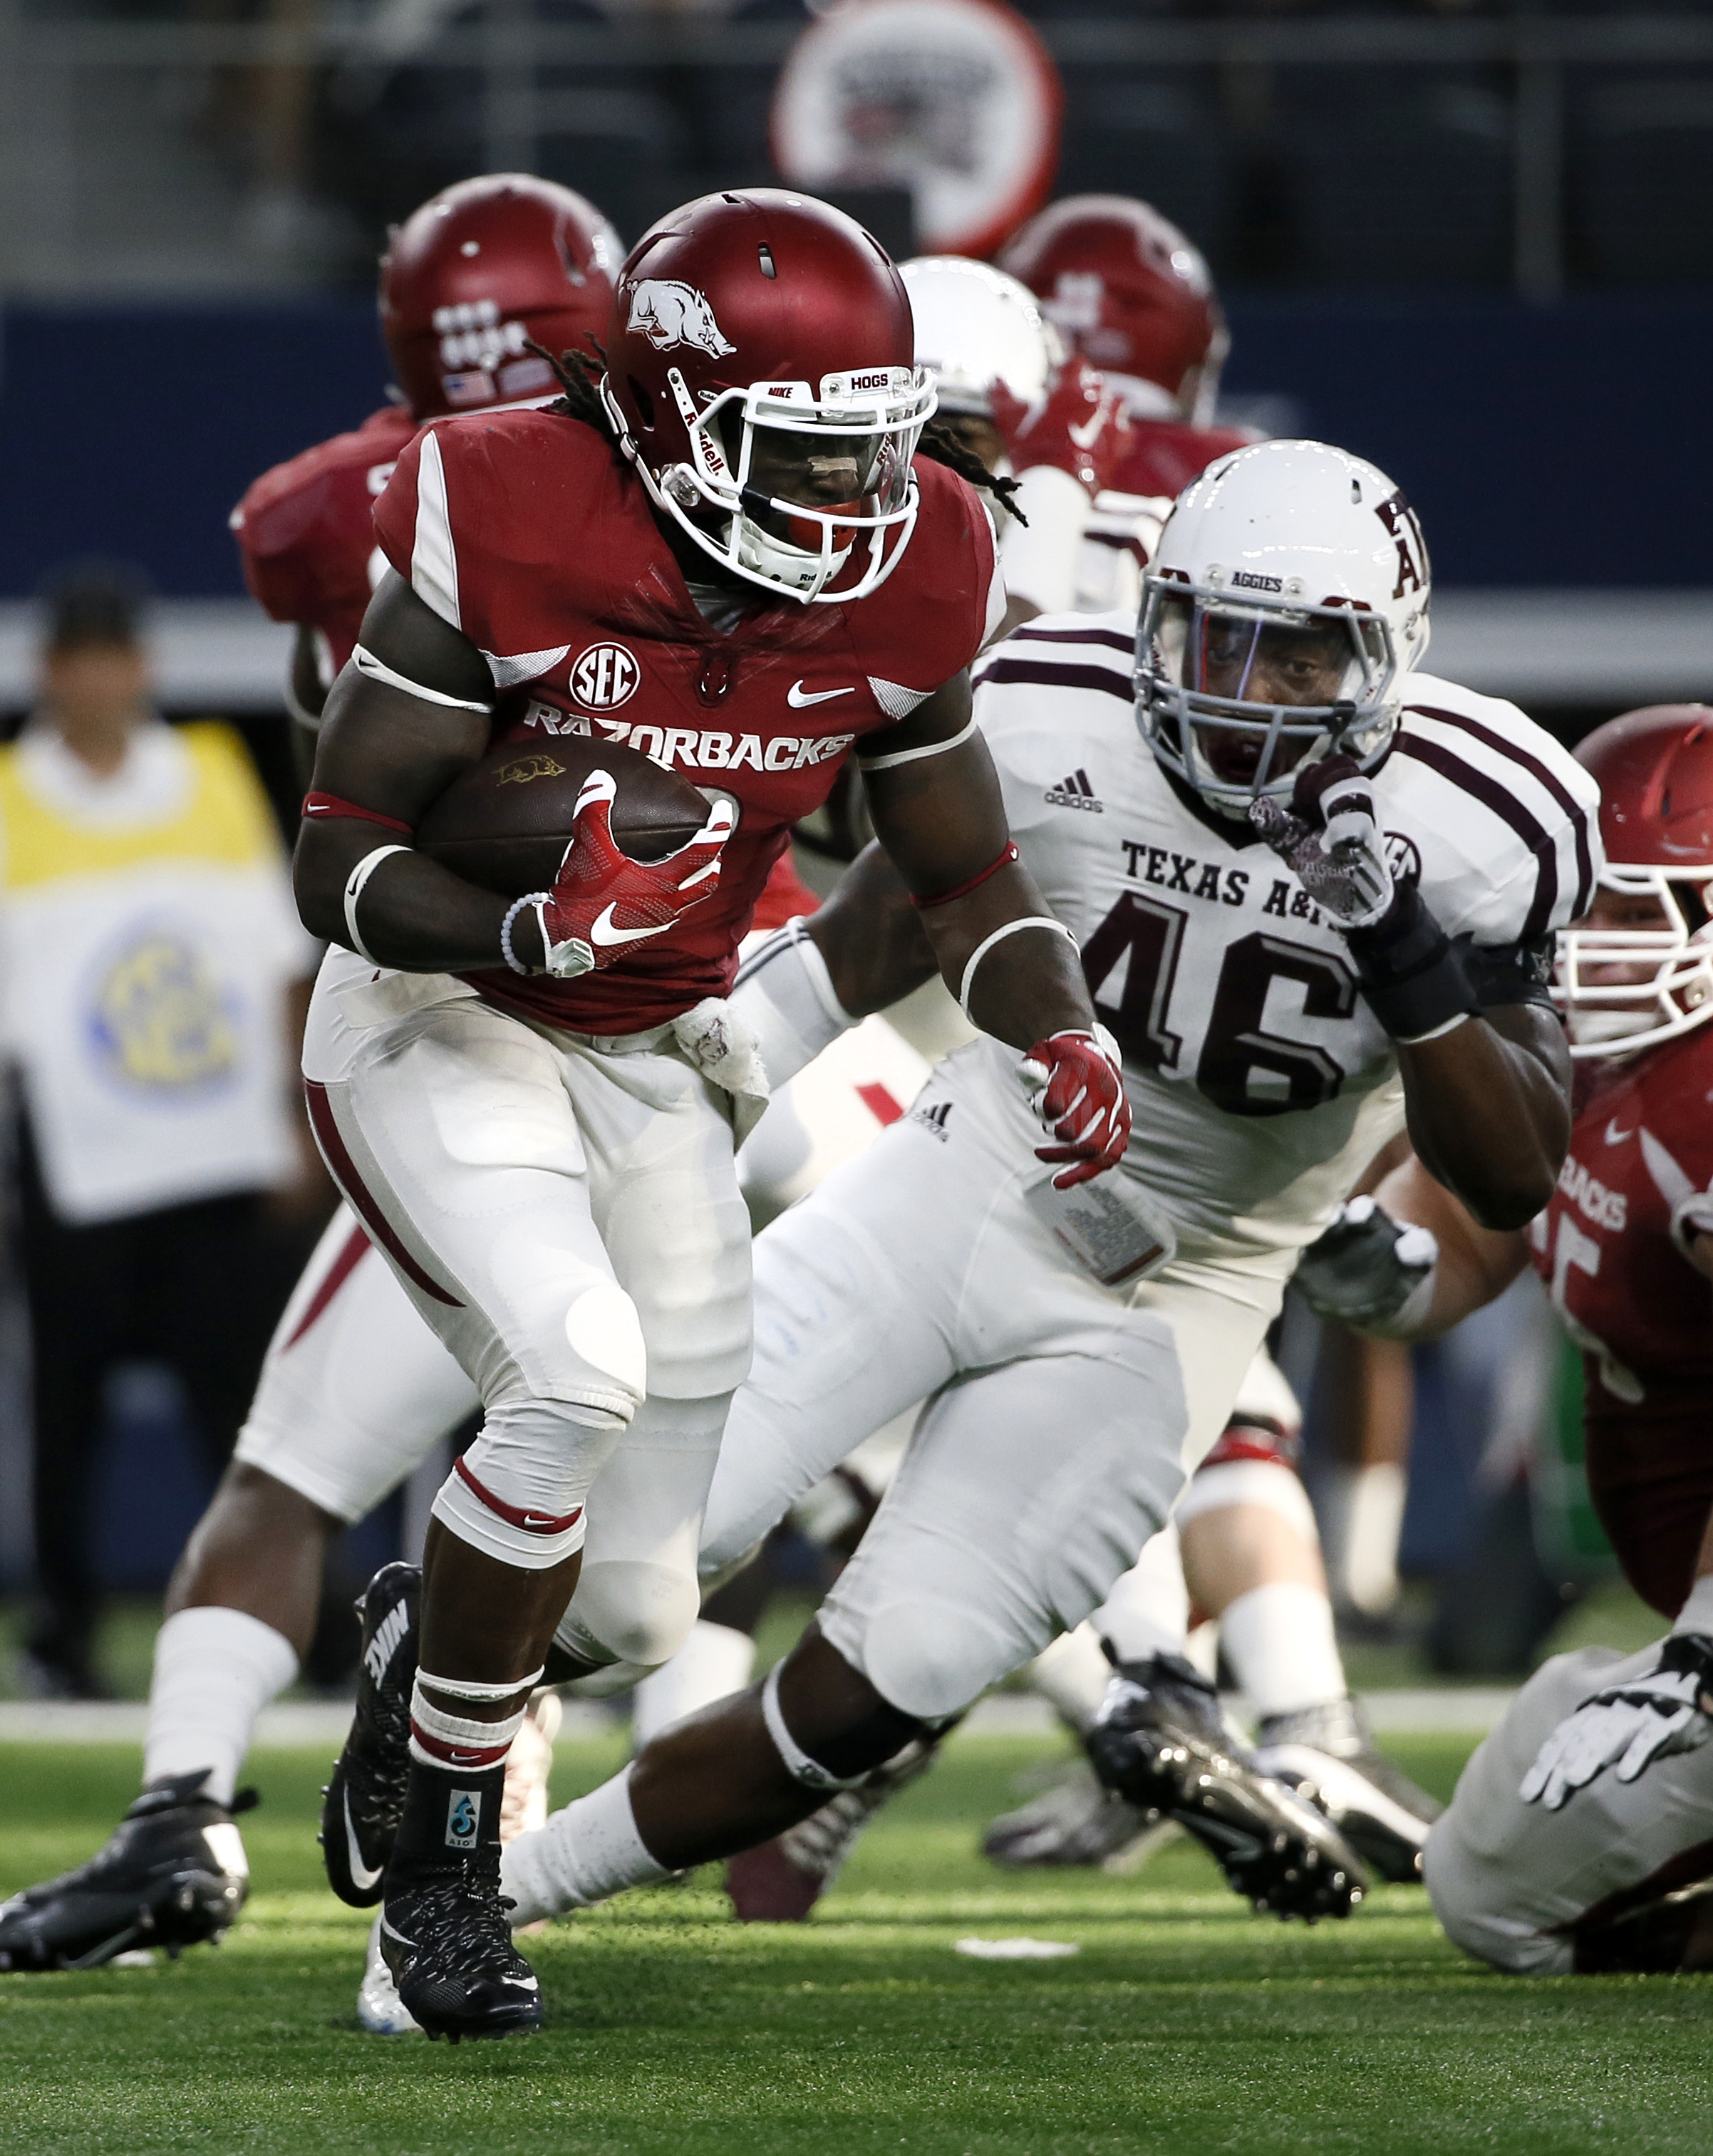 Arkansas running back Alex Collins (3) evades pressure from Texas A&M linebacker A.J. Hilliard (46) during the first half of an NCAA college football game Saturday, Sept. 26, 2015, in Arlington, Texas. (AP Photo/Tony Gutierrez)